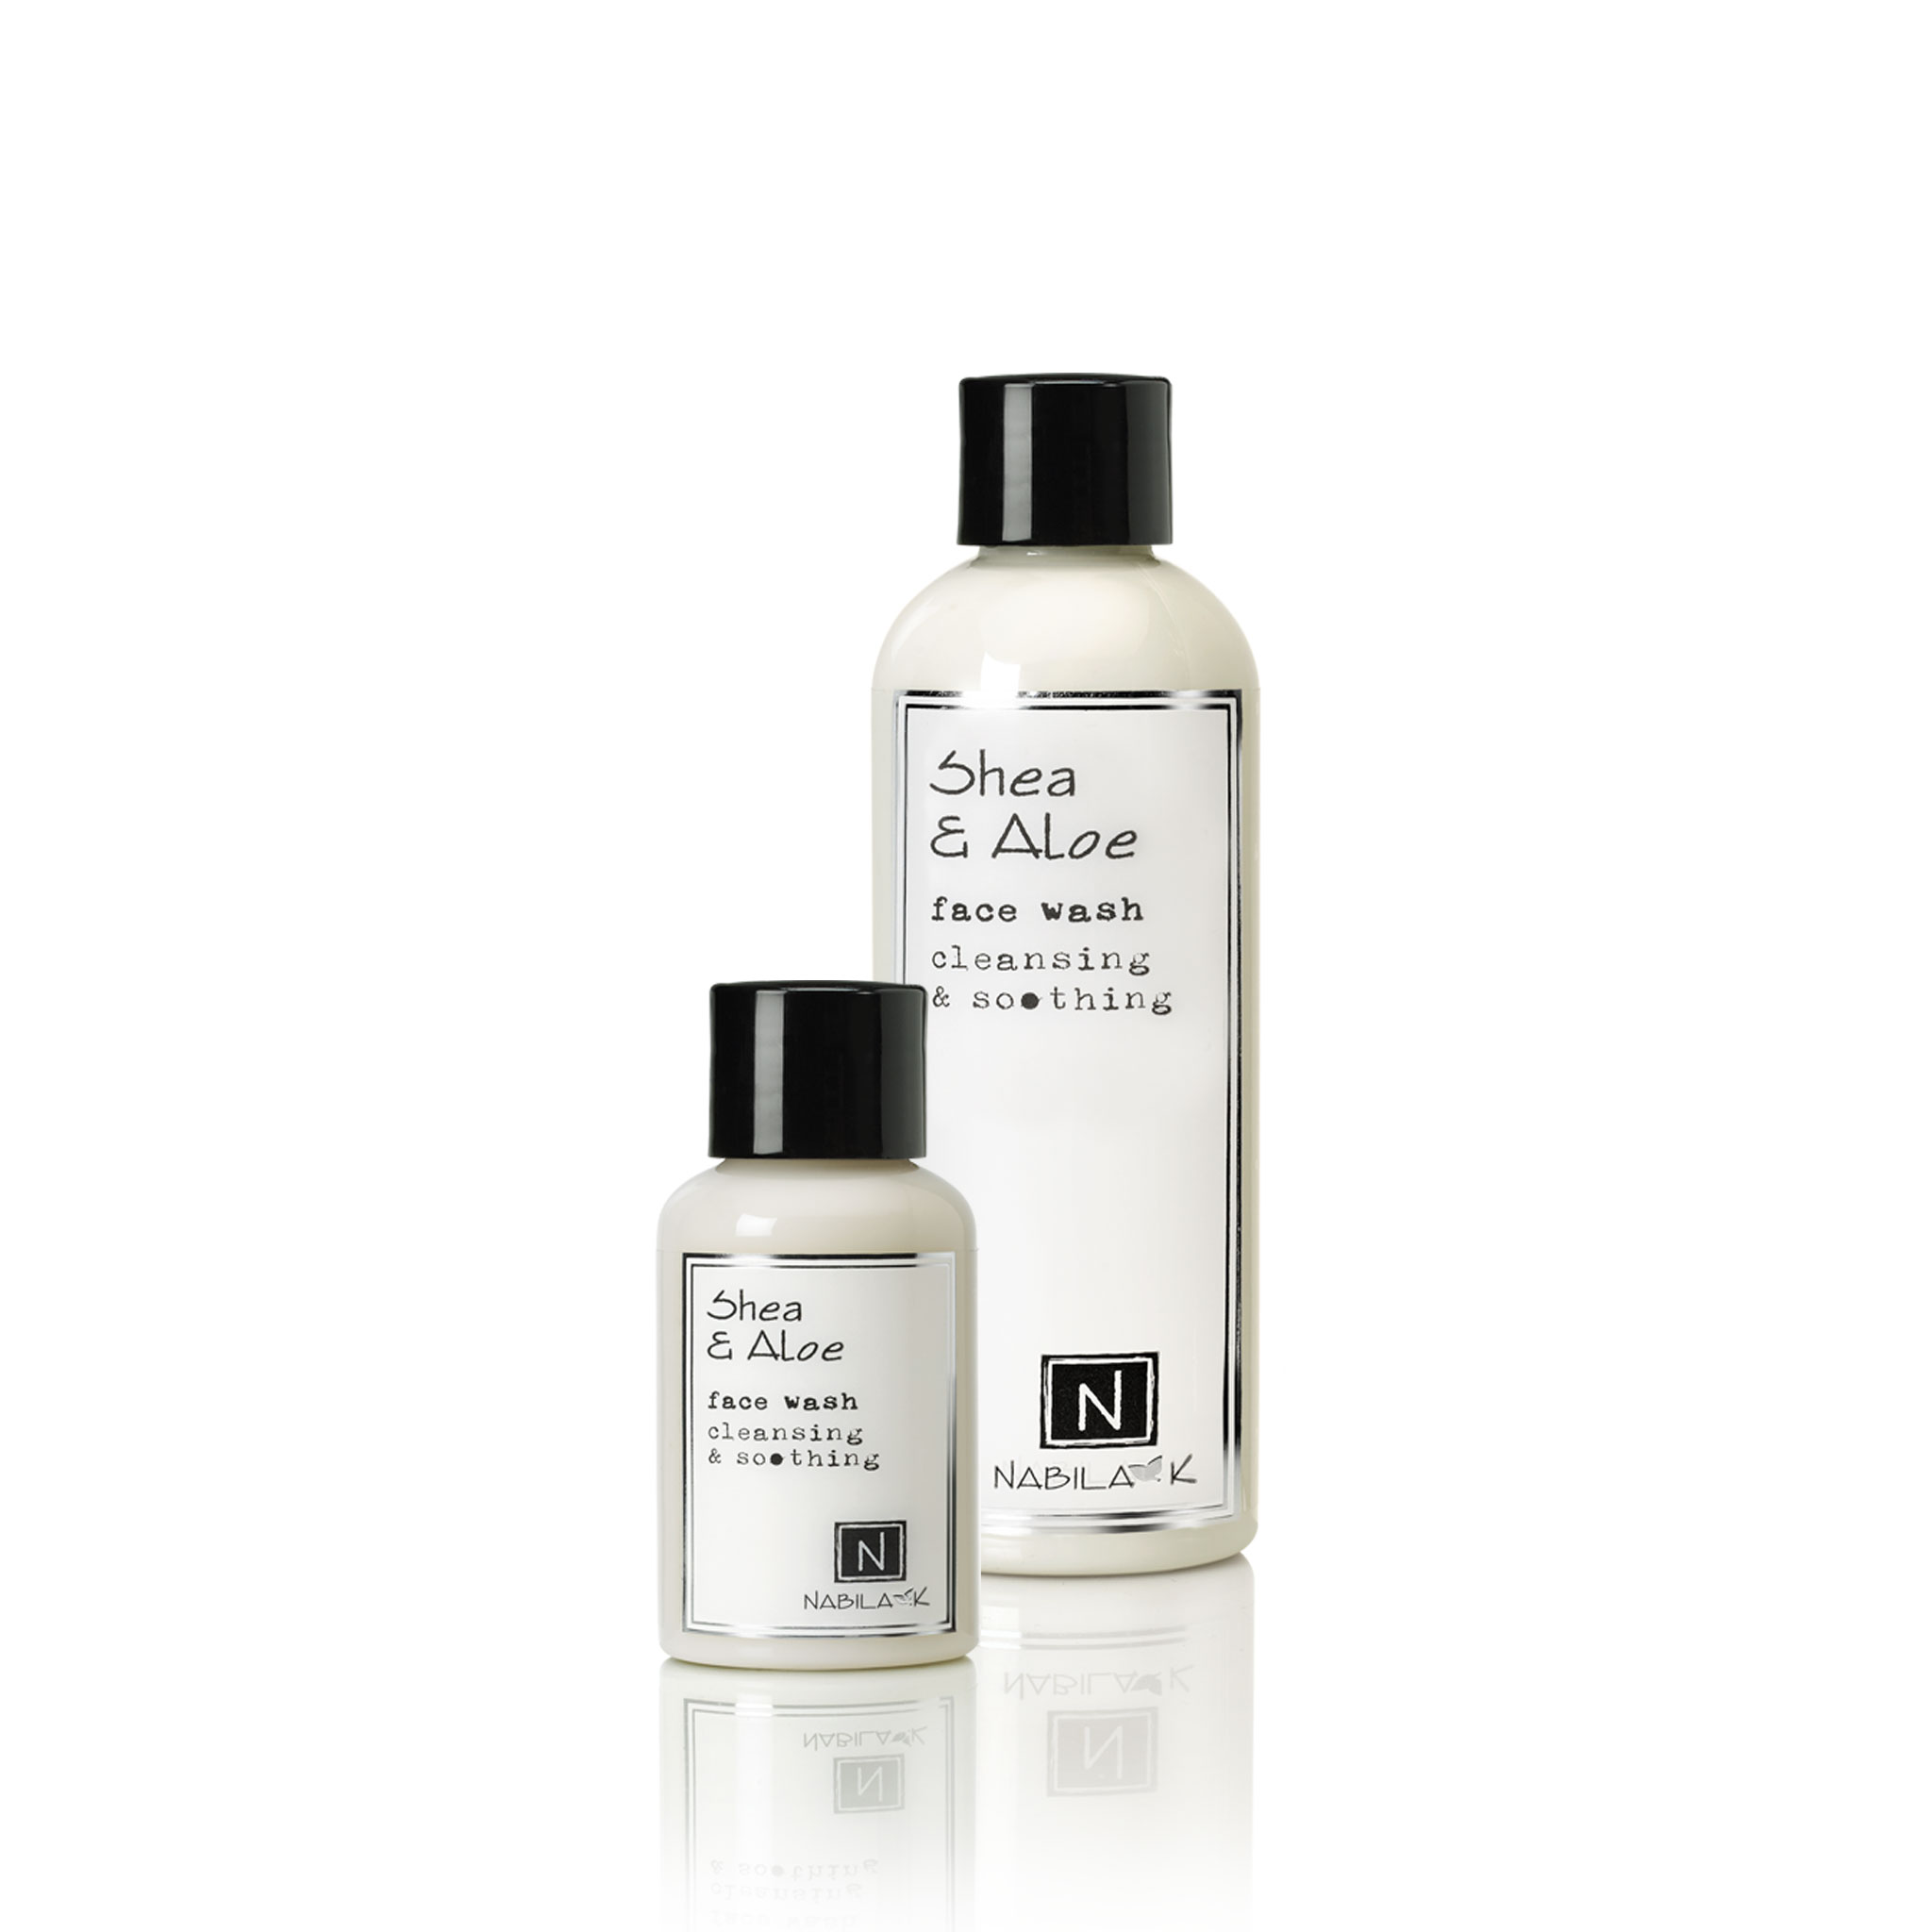 2.4oz and 9oz bottle of Shea and Aloe Face Wash Cleansing and Soothing